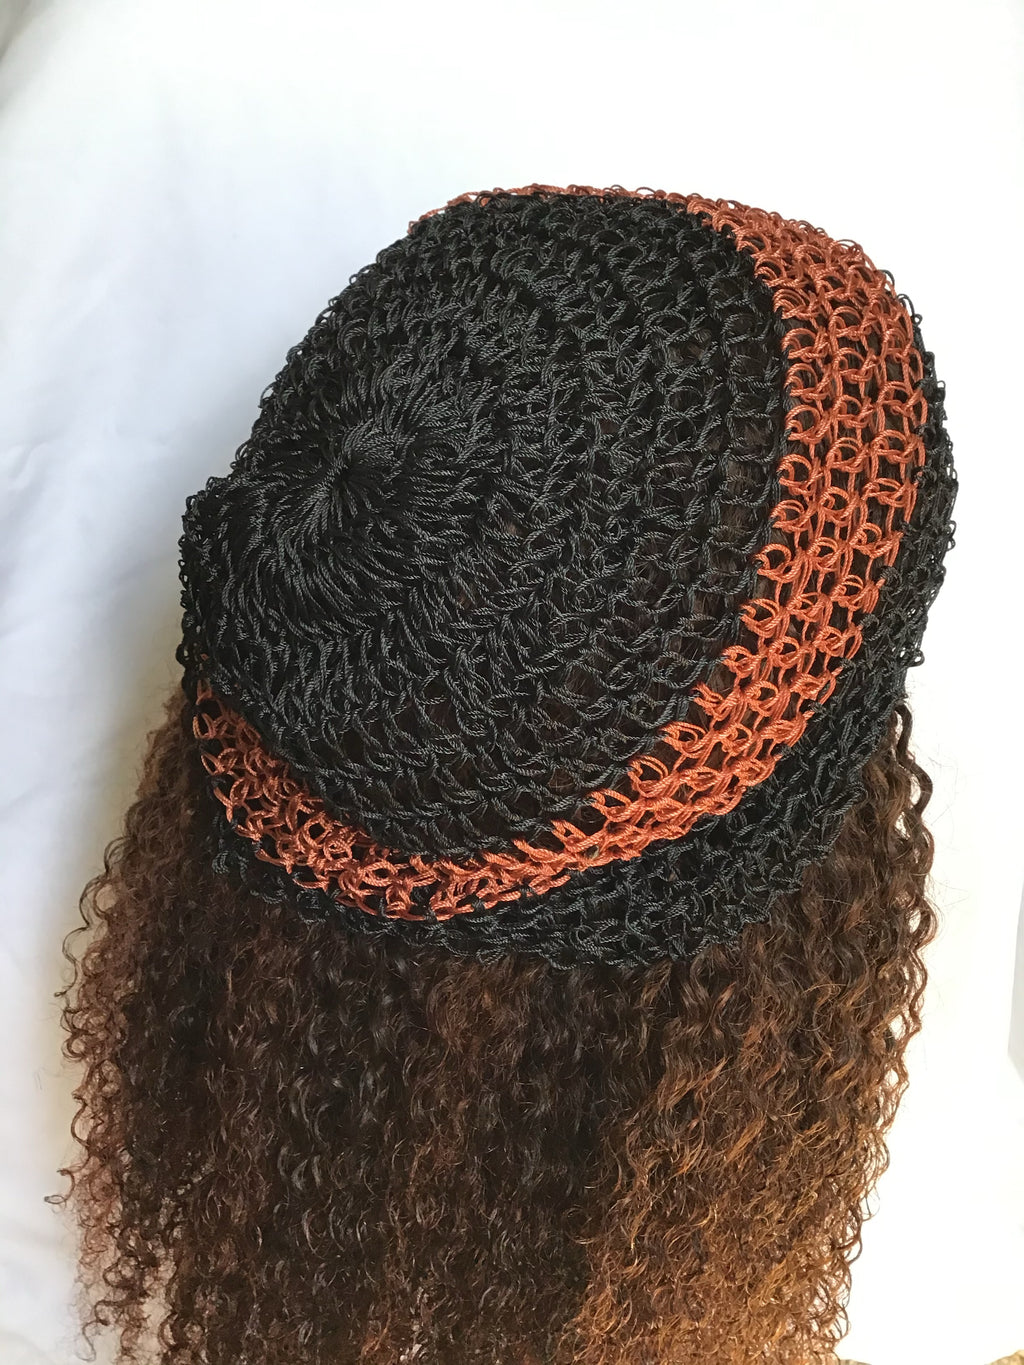 HAND-WOVEN NYLON HAIR (AFRICAN HAIRNET)